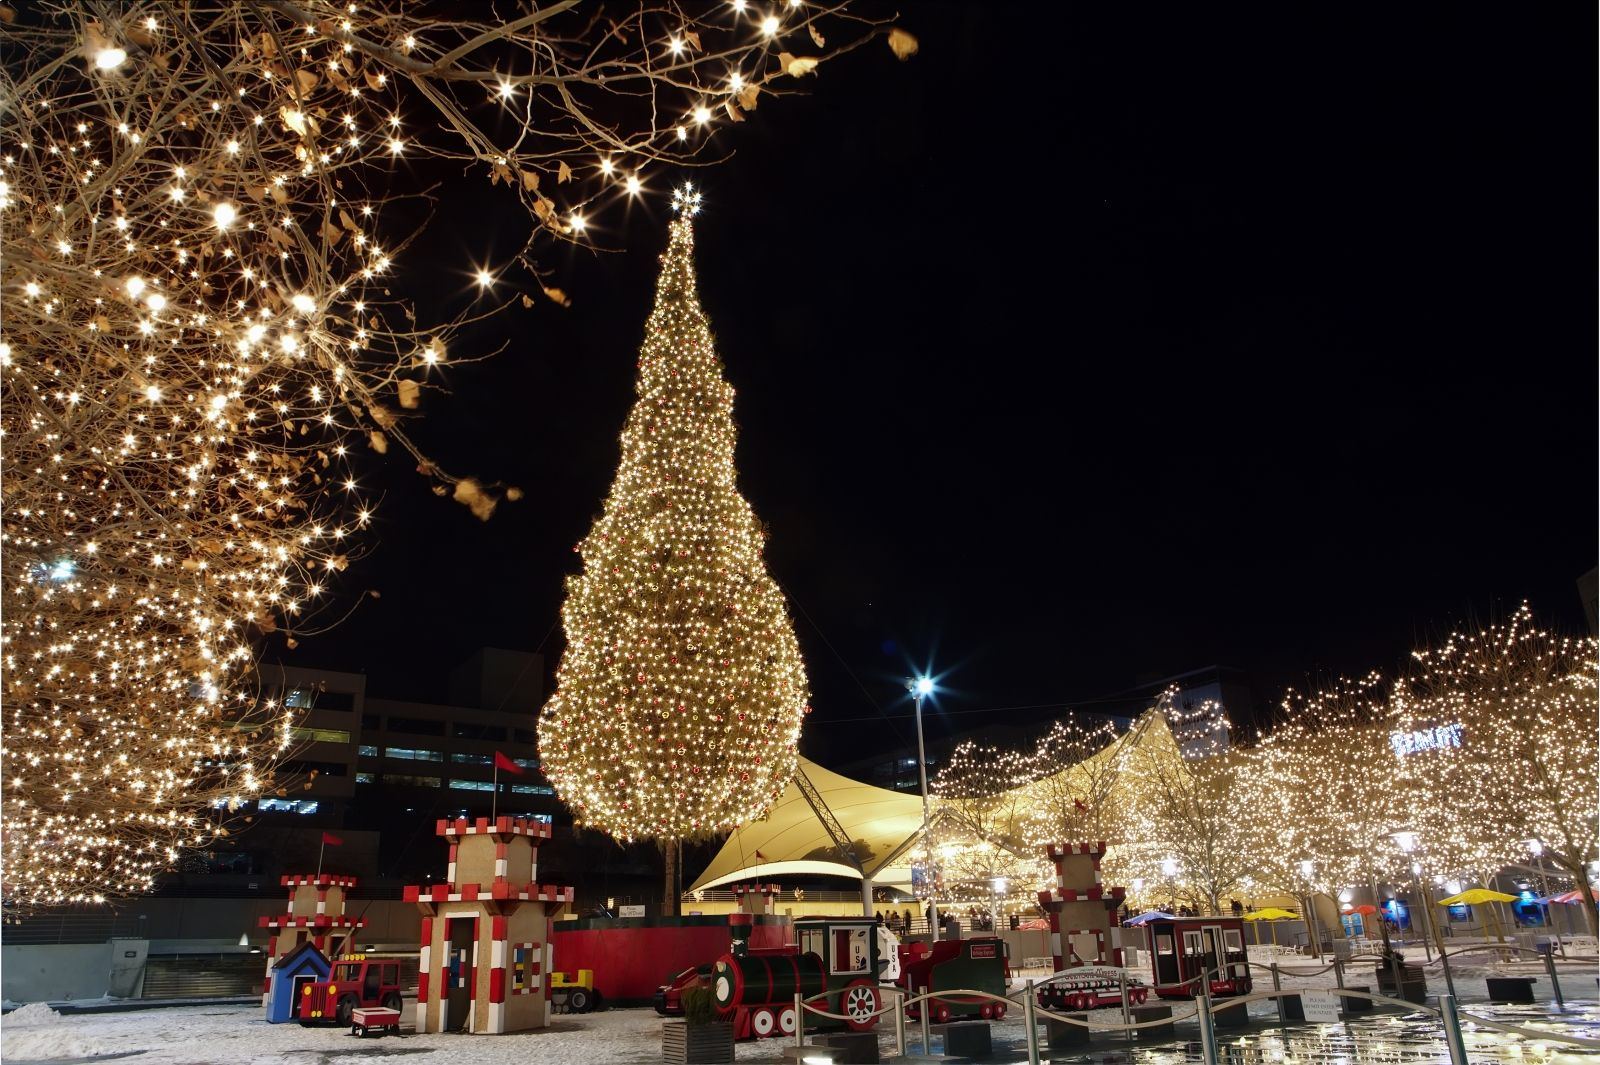 Kansas City sparkles in holiday splendor with magnificent displays ...